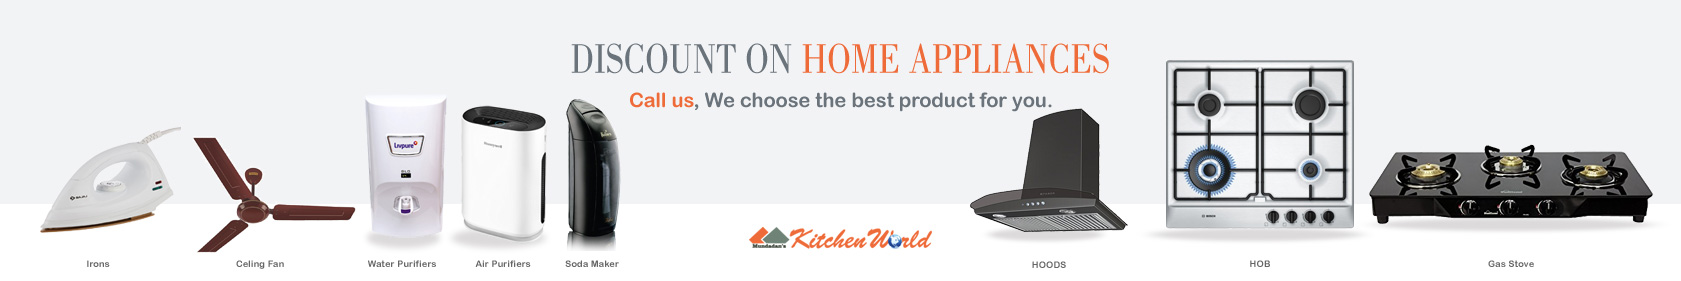 Mundadan kitchen world - home-appliances-angamaly